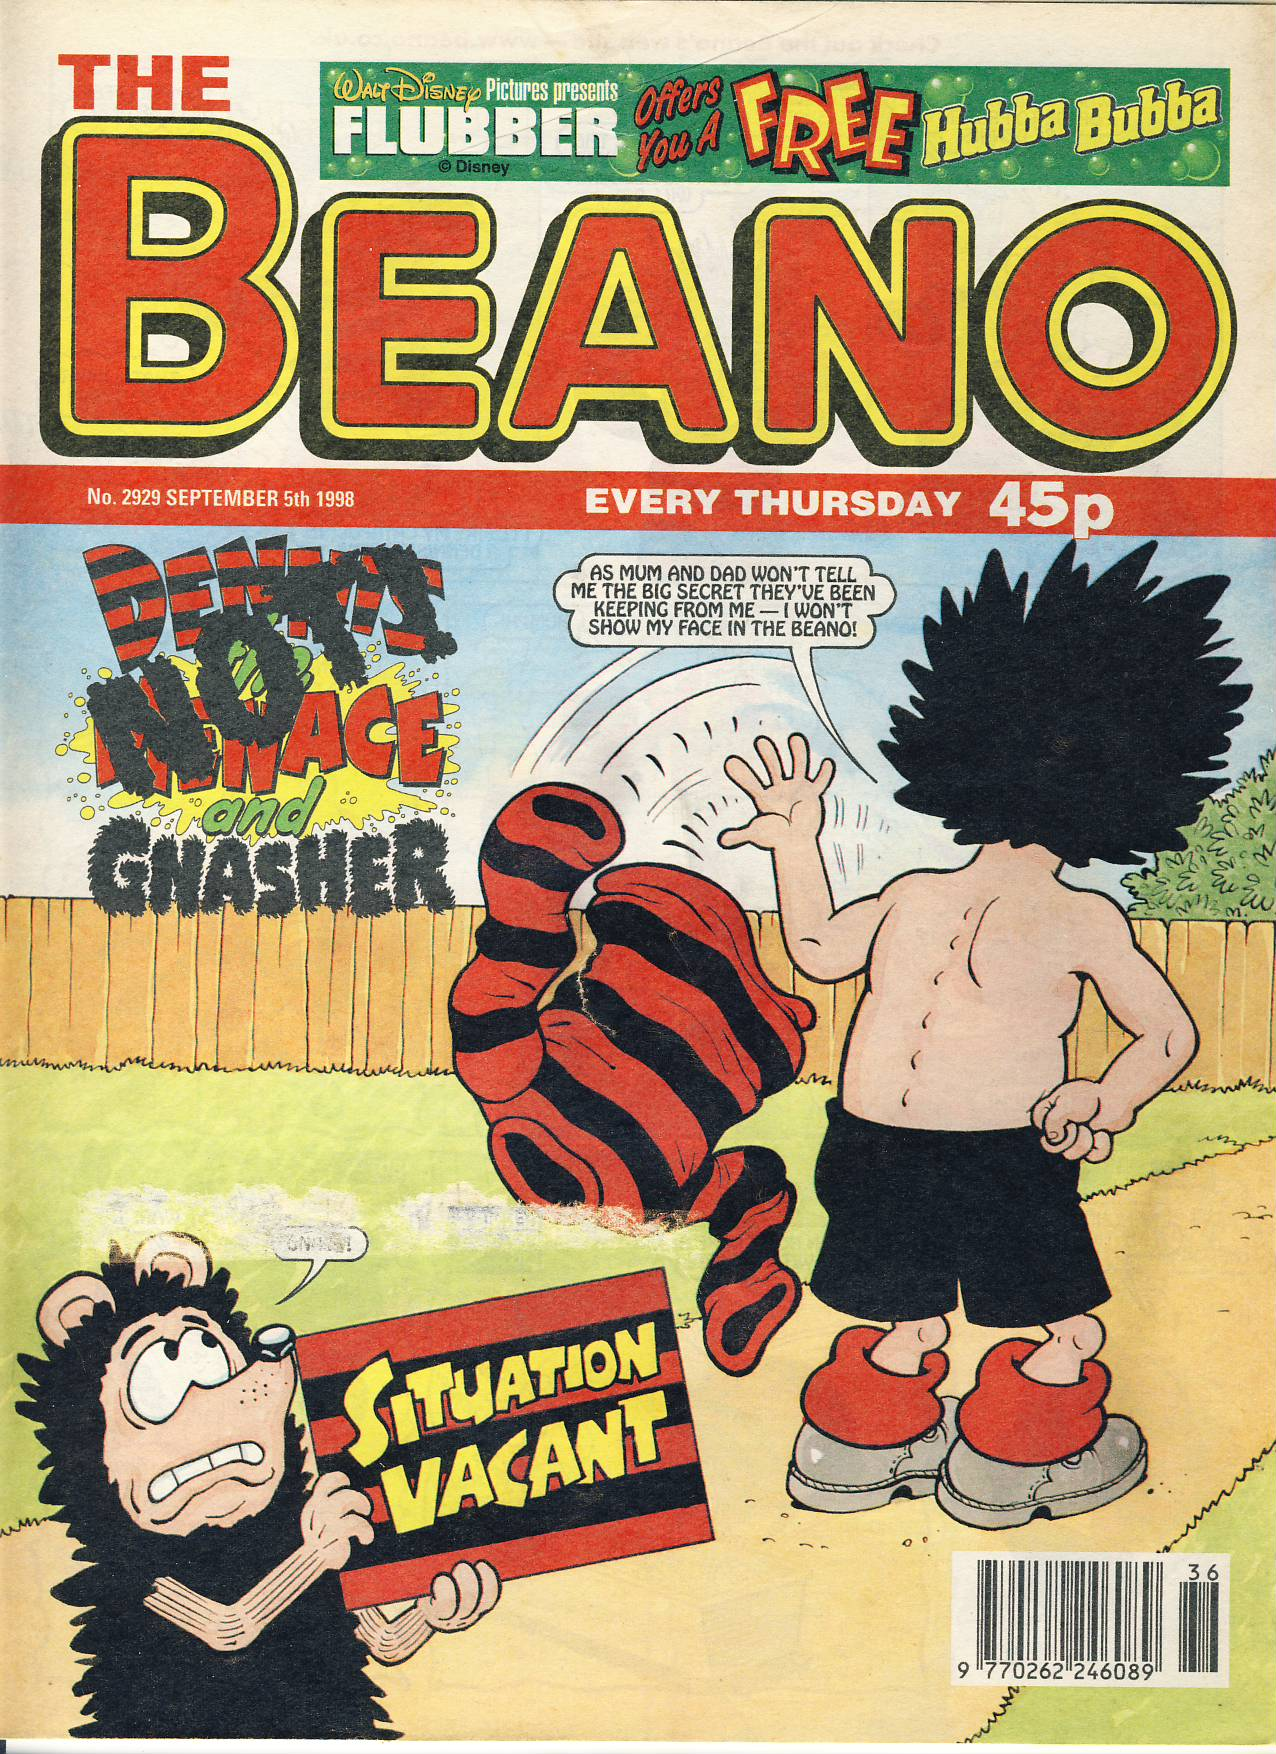 1998 September 5th BEANO vintage comic Good Gift Christmas Present Birthday Anniversary ref227 a pre-owned item in very good read condition.